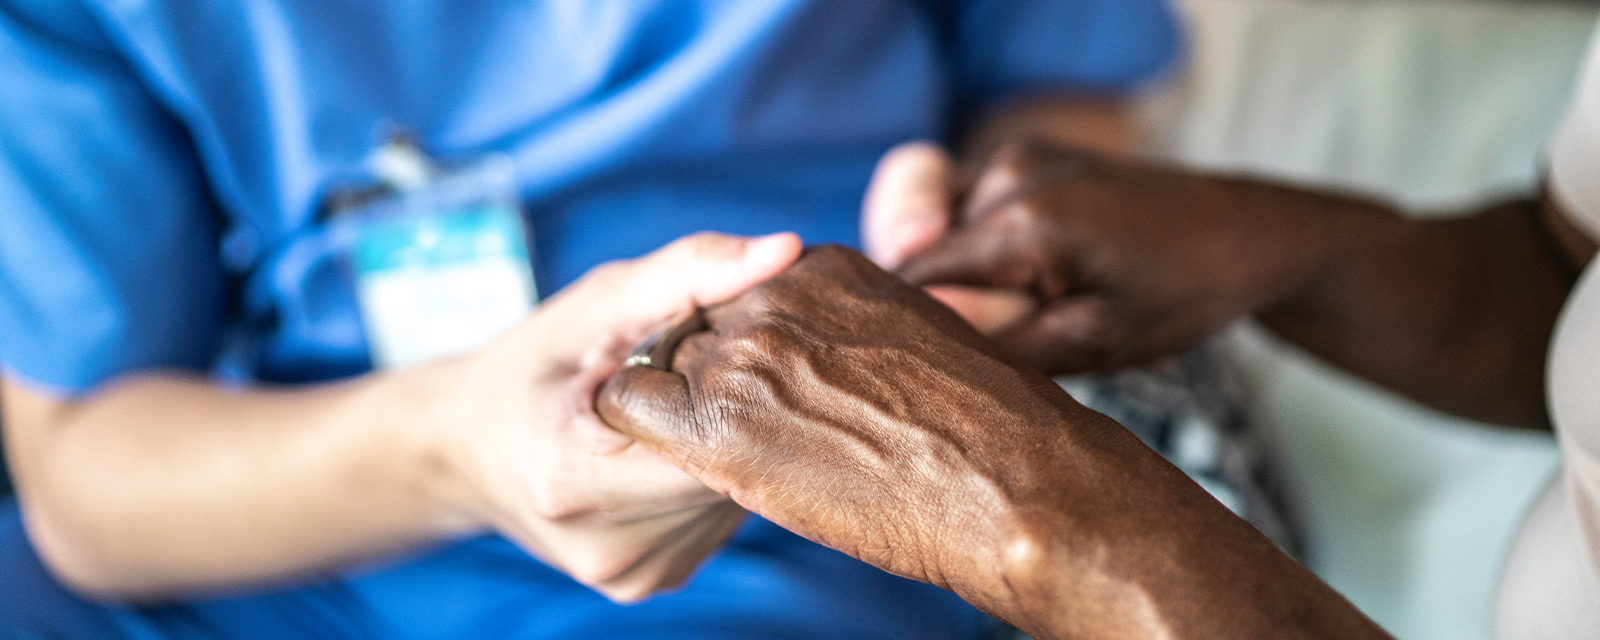 What Can We Do About Health Disparities in Rheumatology?